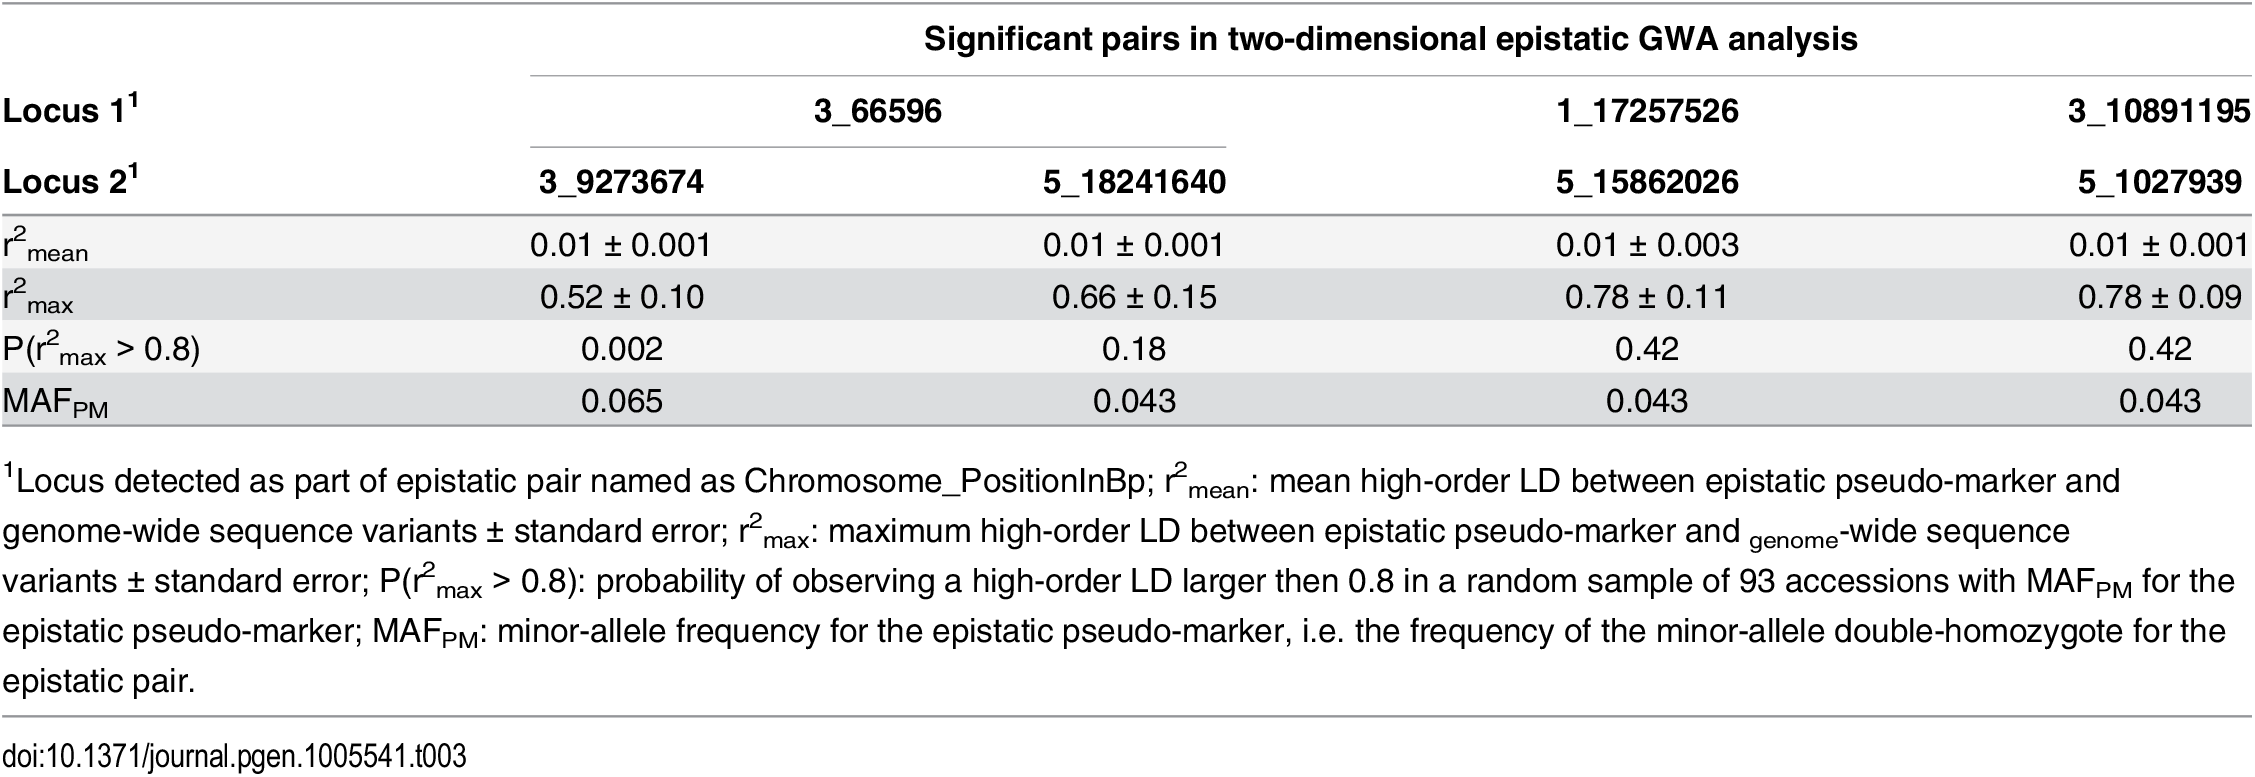 """Estimation of the risk that epistatic pairs identified in the GWA analysis are due to high-order LD to unobserved functional variants (""""apparent epistasis"""")."""